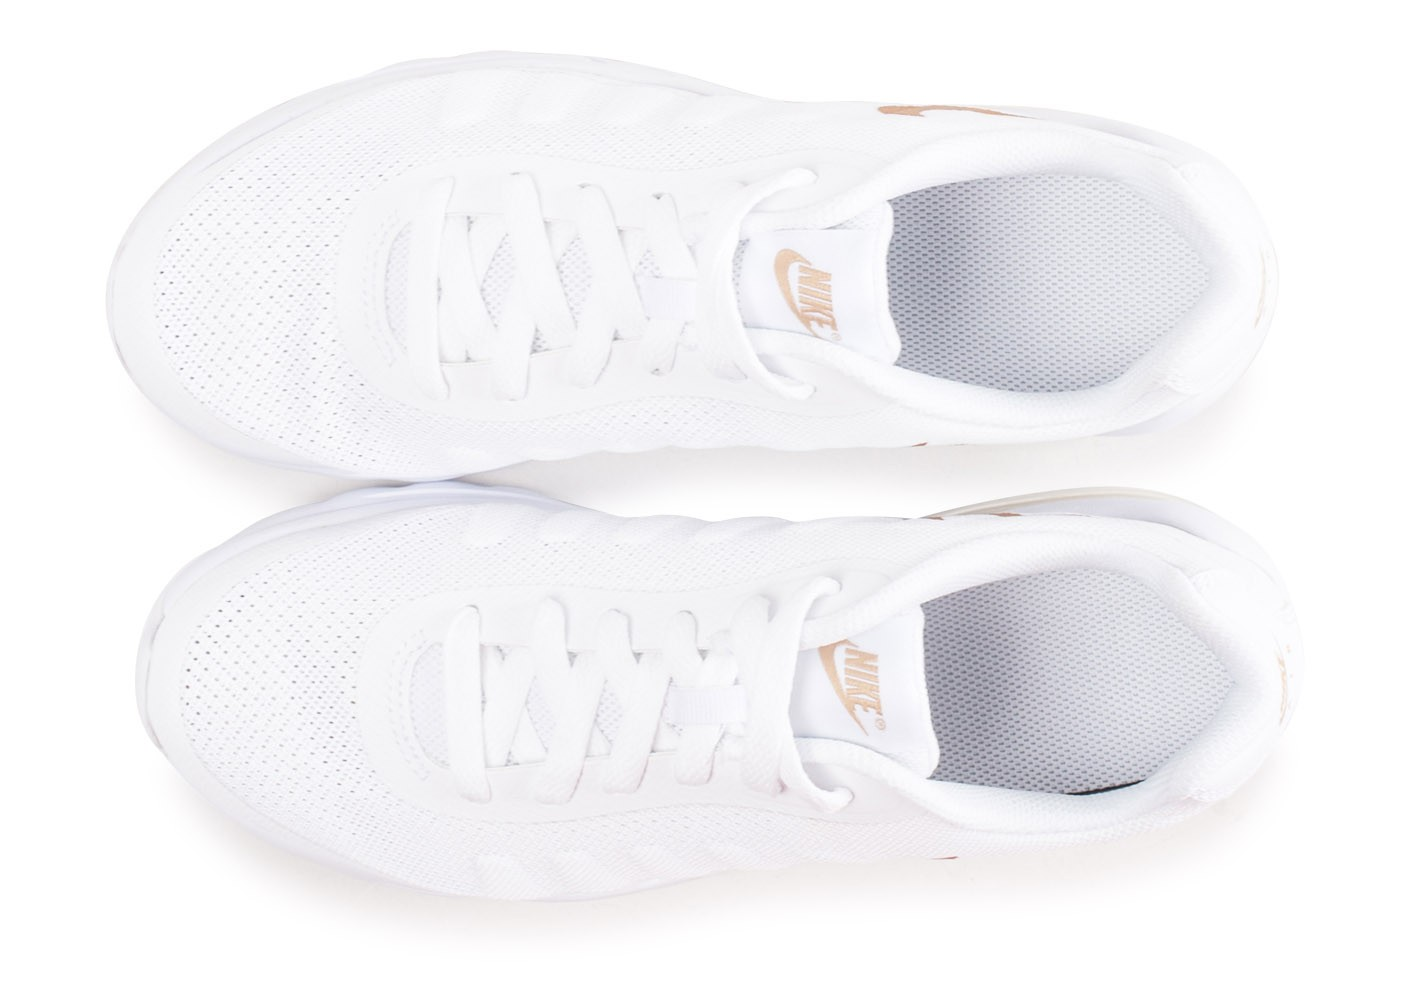 new product 3cb7b 7099f ... Chaussures Nike Air Max Invigor blanche junior vue arrière ...